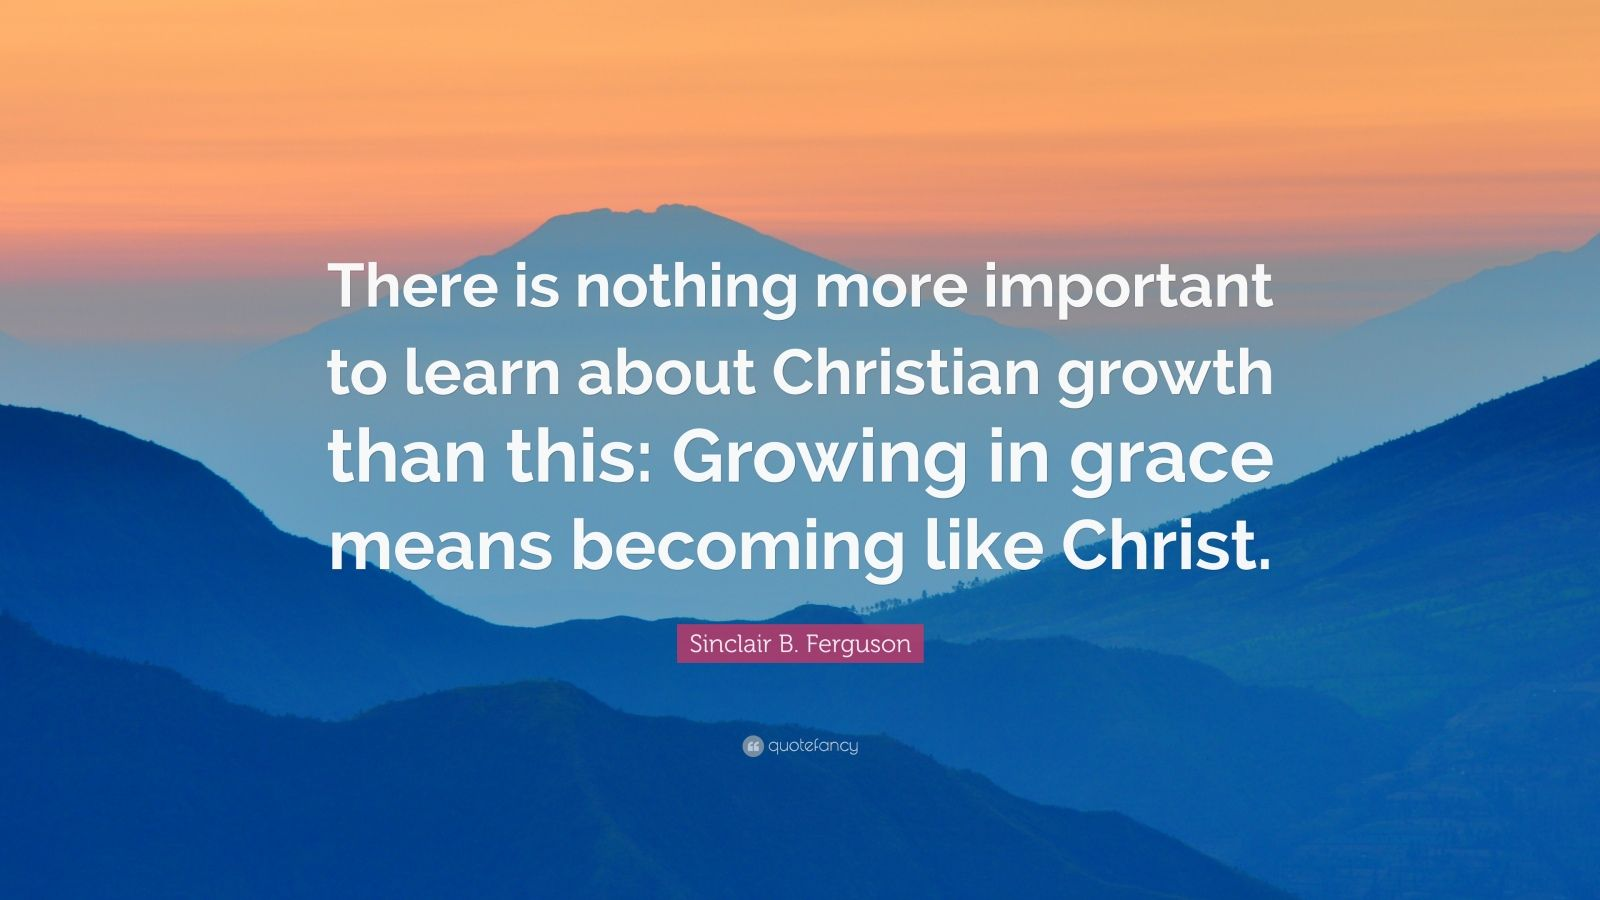 """Sinclair B. Ferguson Quote: """"There is nothing more important to learn about Christian growth than this: Growing in grace means becoming like Christ."""""""